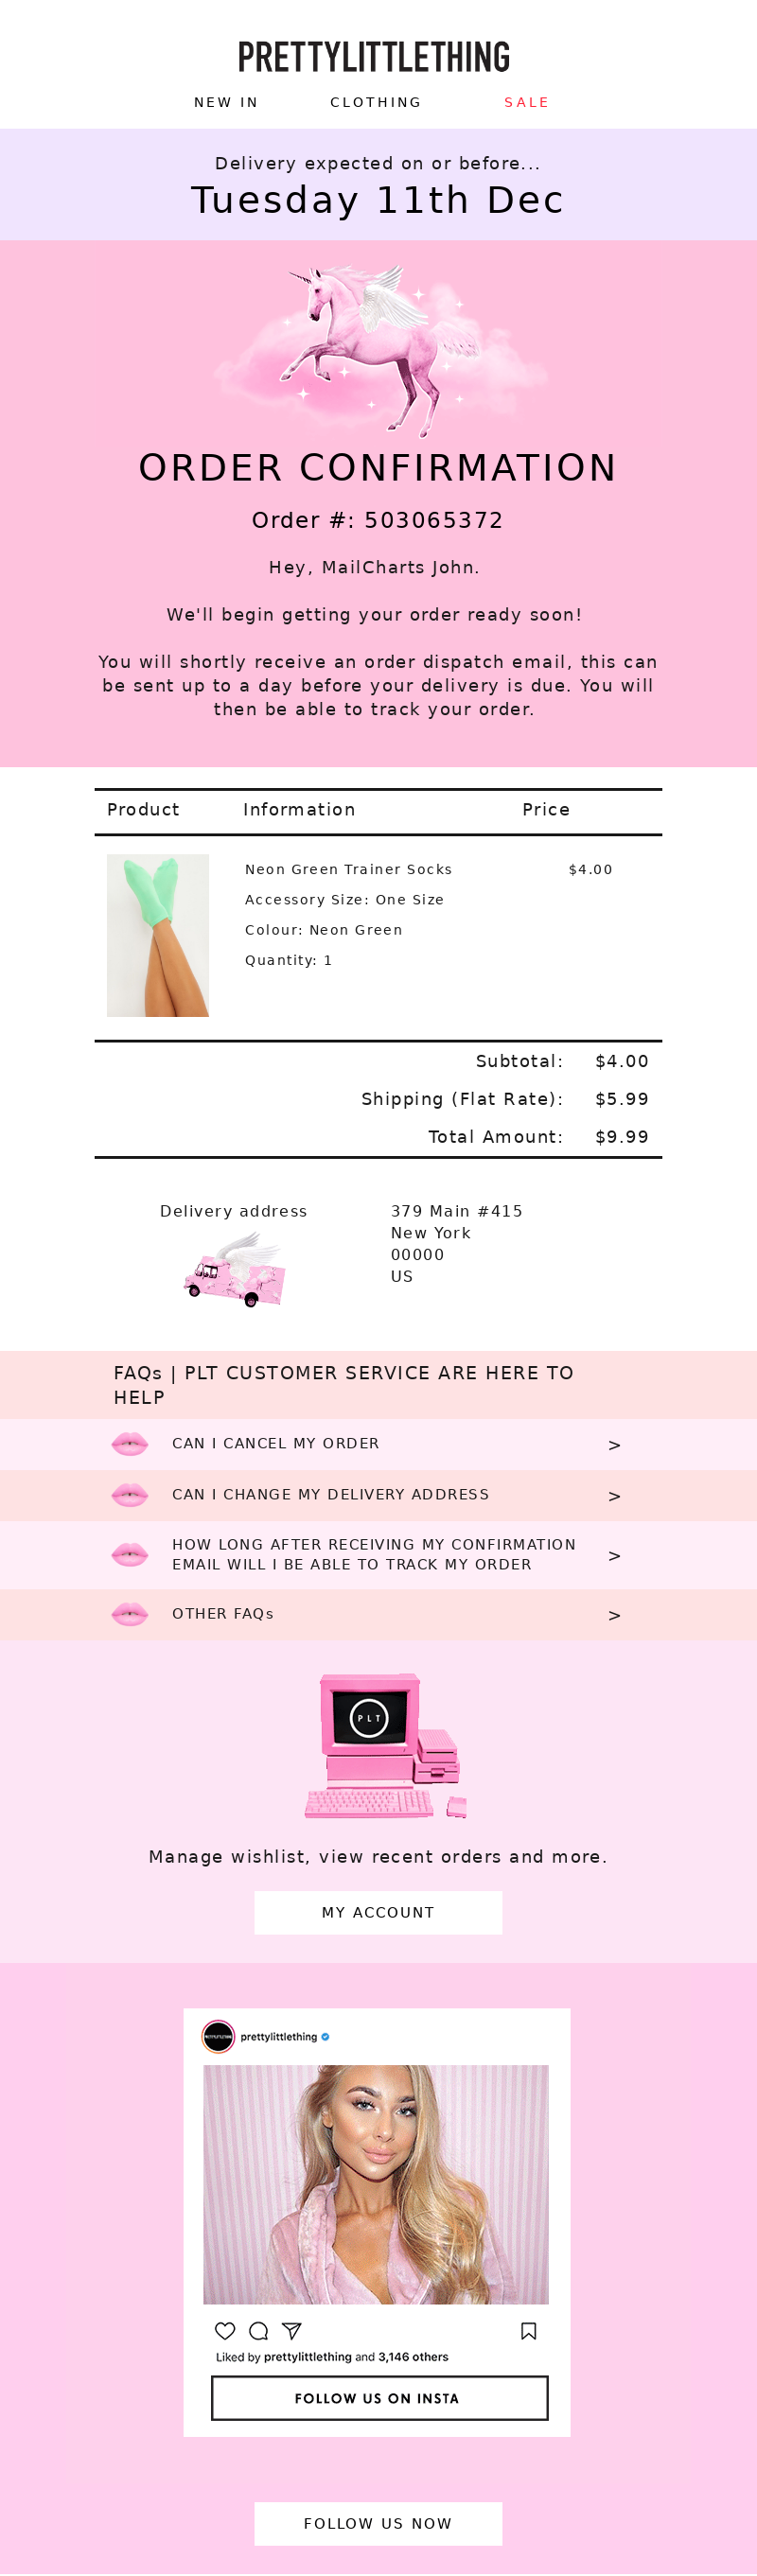 PrettyLittleThing USA - PrettyLittleThing: Order Confirmation # 503065372